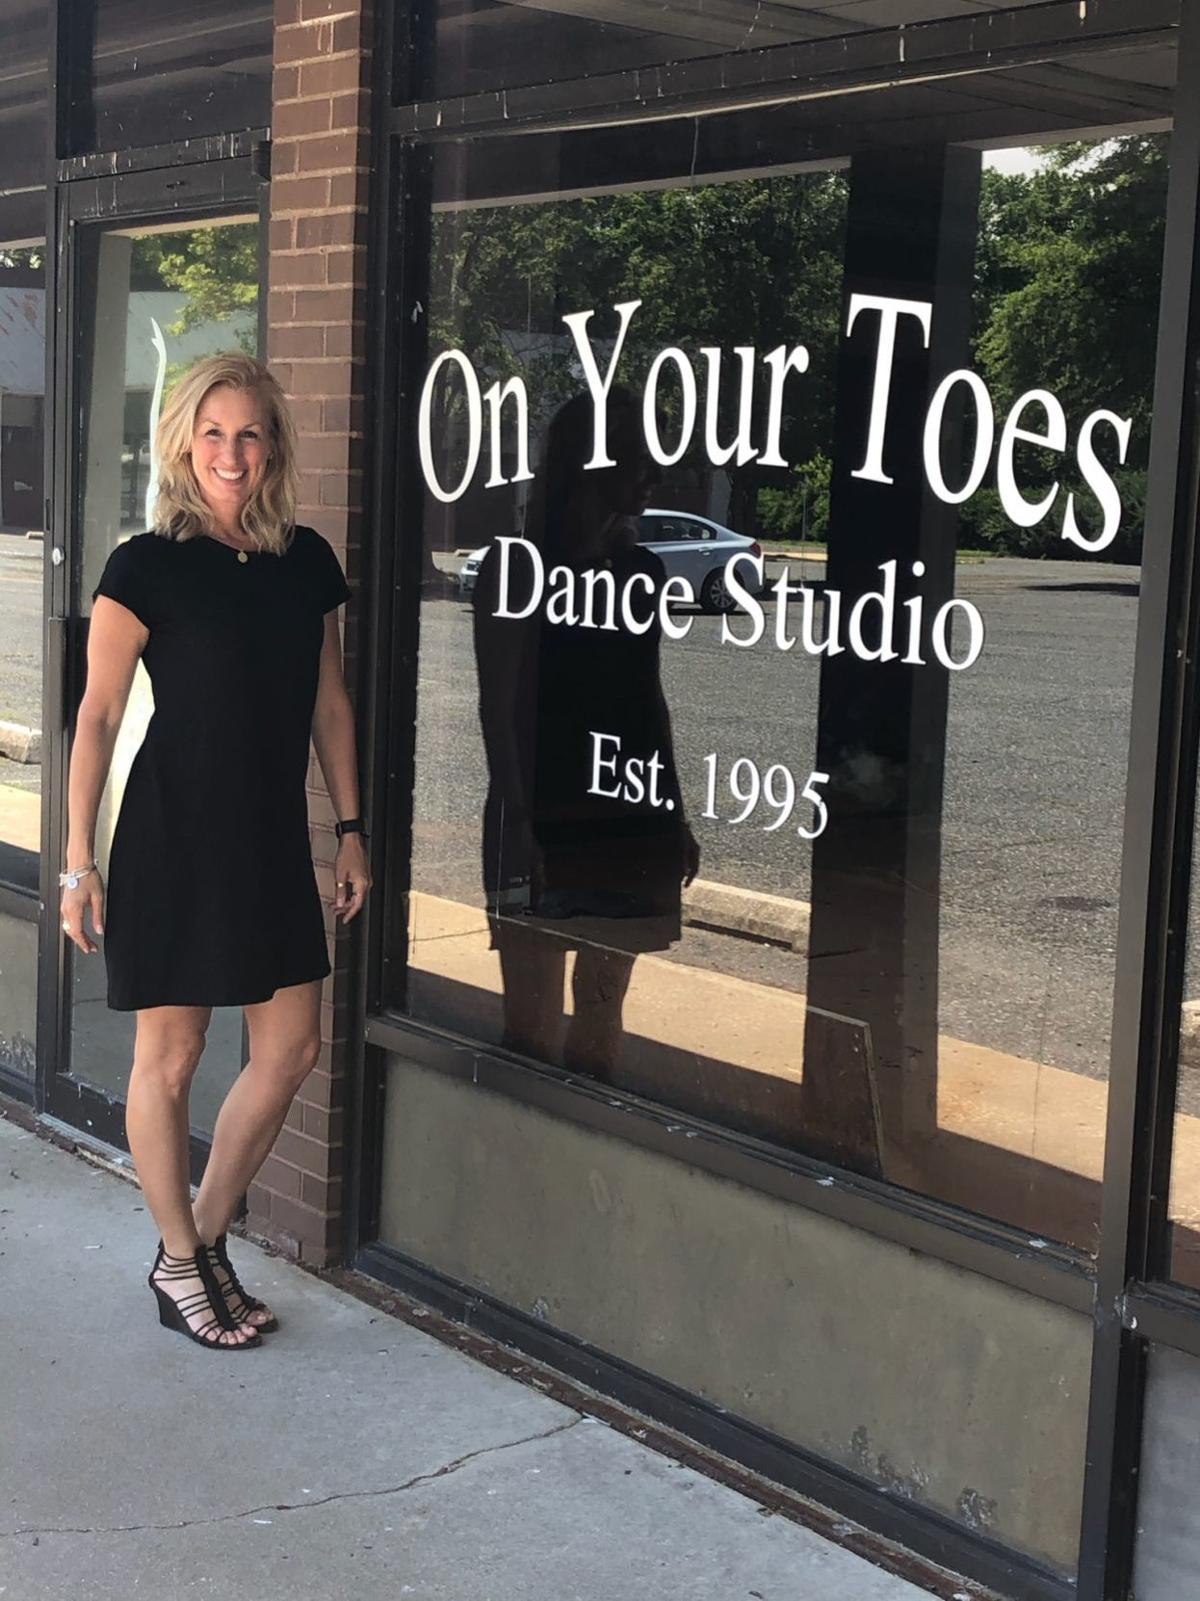 On Your Toes Dance Studio closes after 25 years